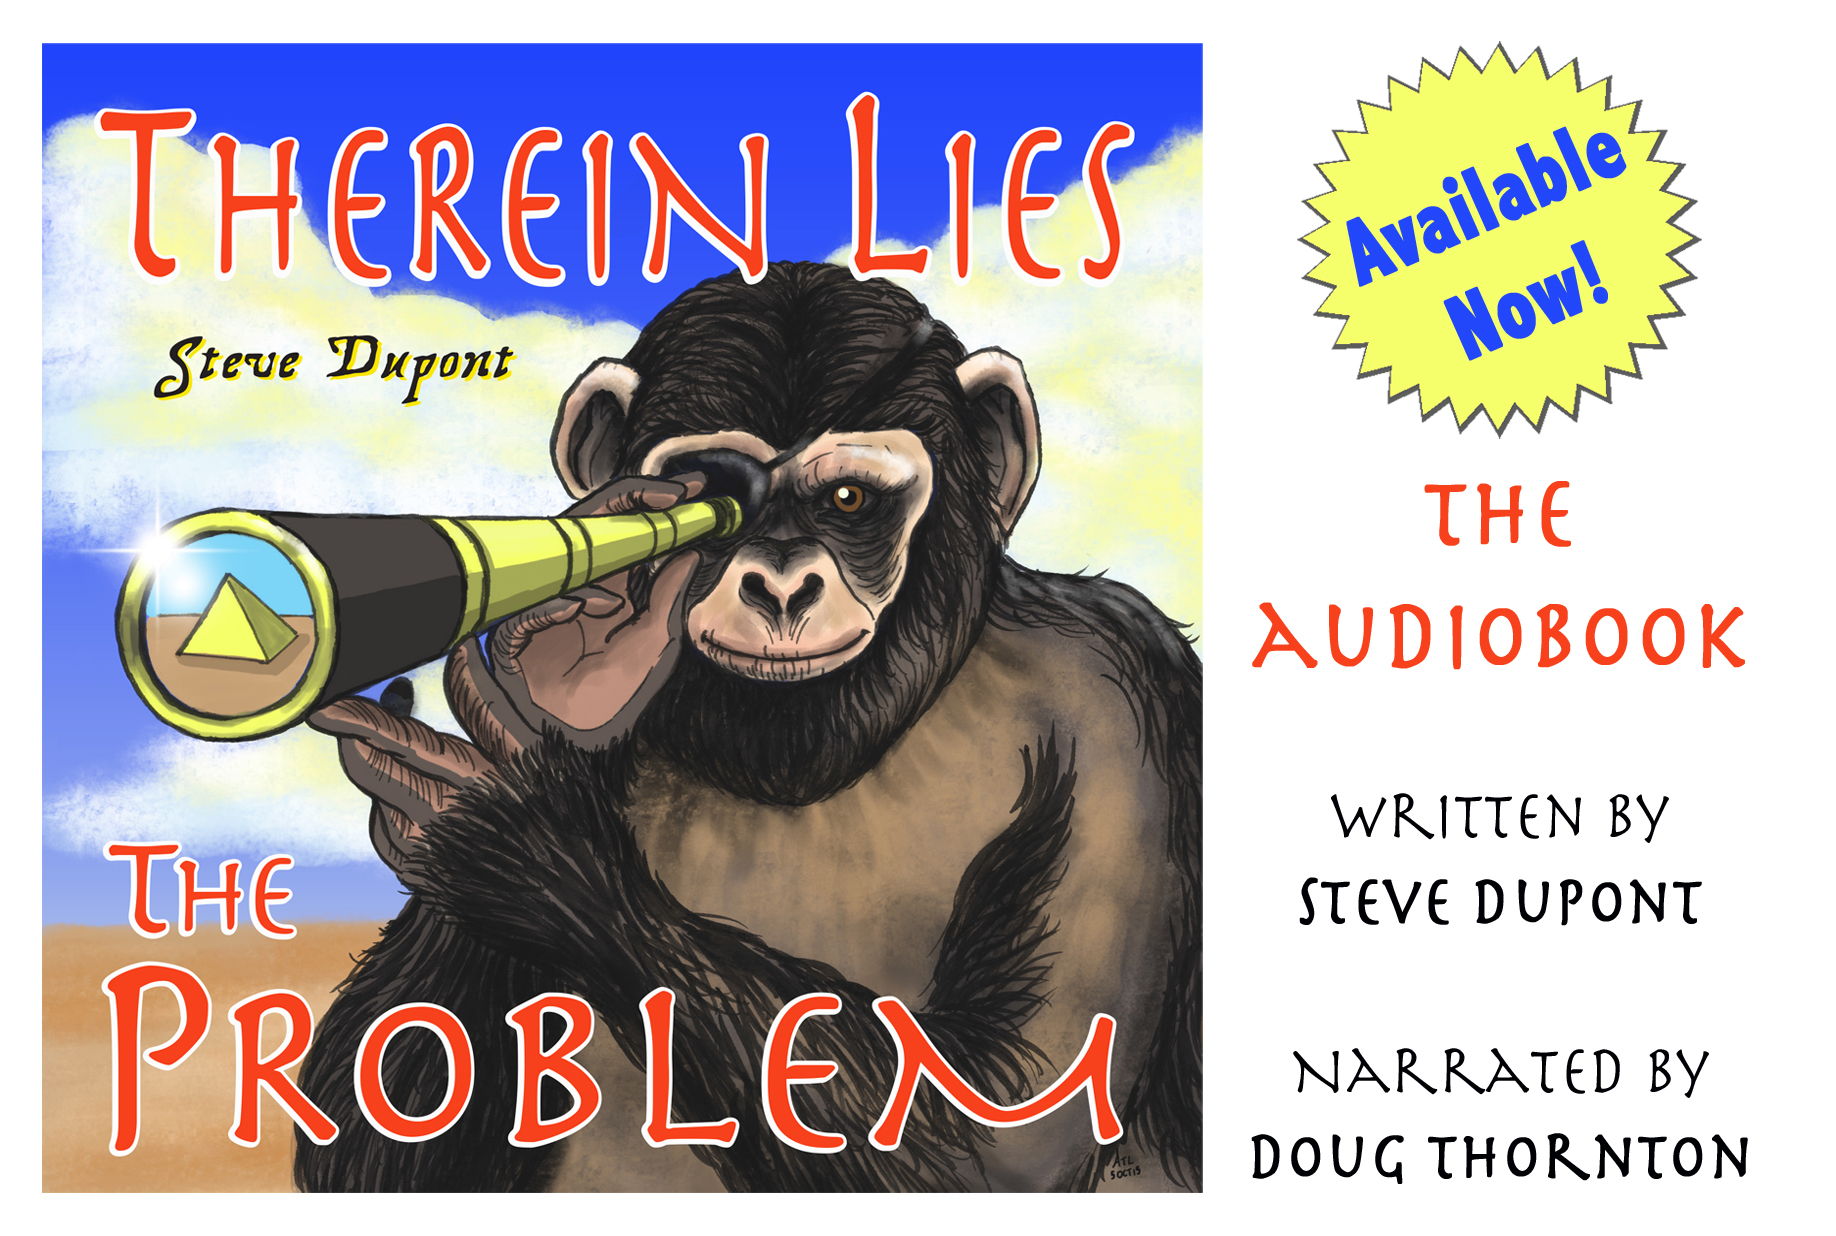 Now available, The Audiobook